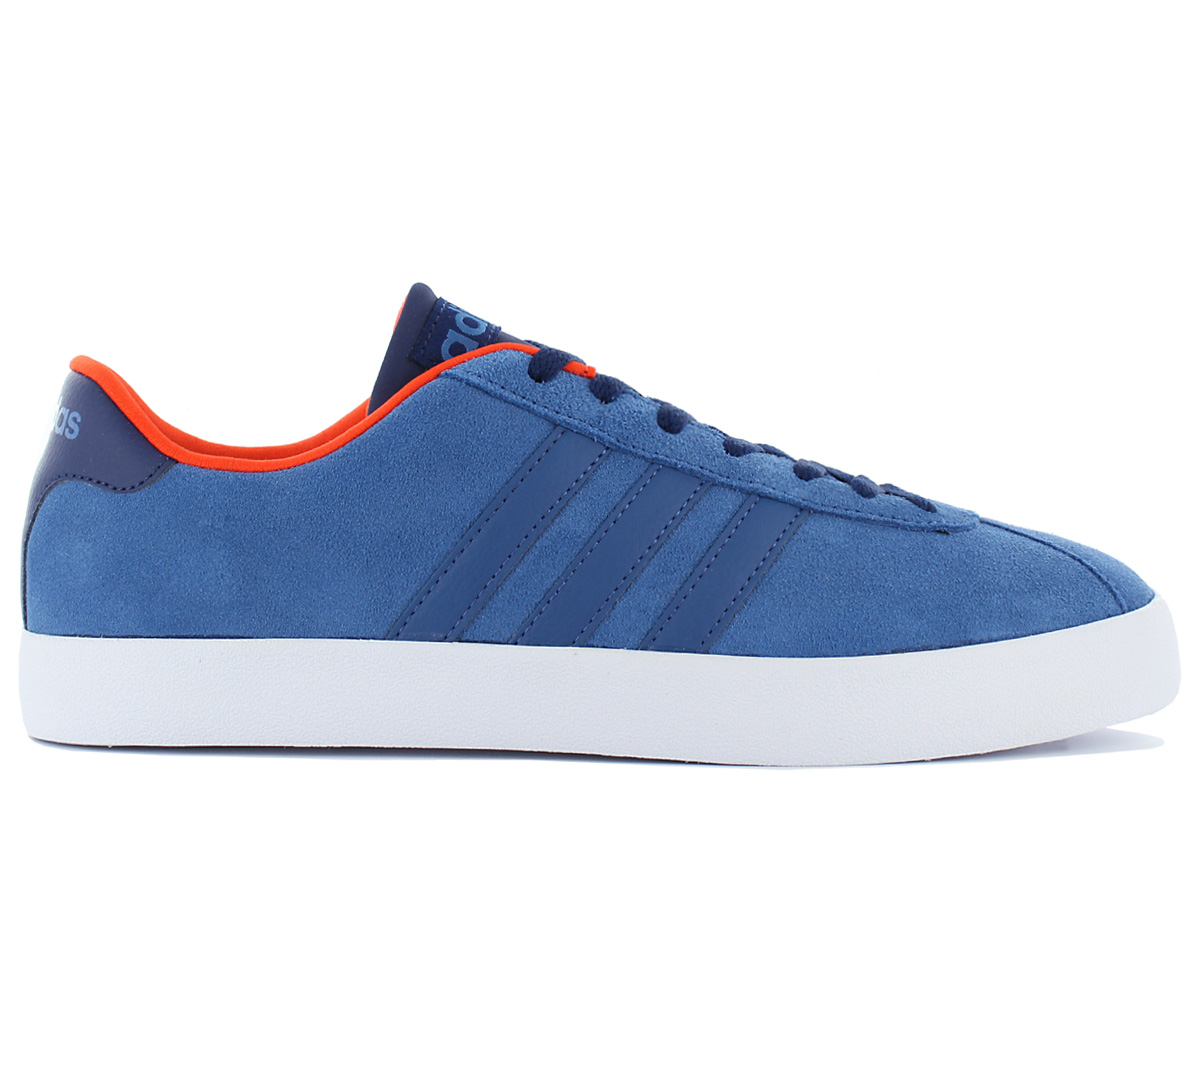 Adidas VL Court Vulc Low Sneaker Men 's Shoes Blue Skate Shoes Trainers aw3963